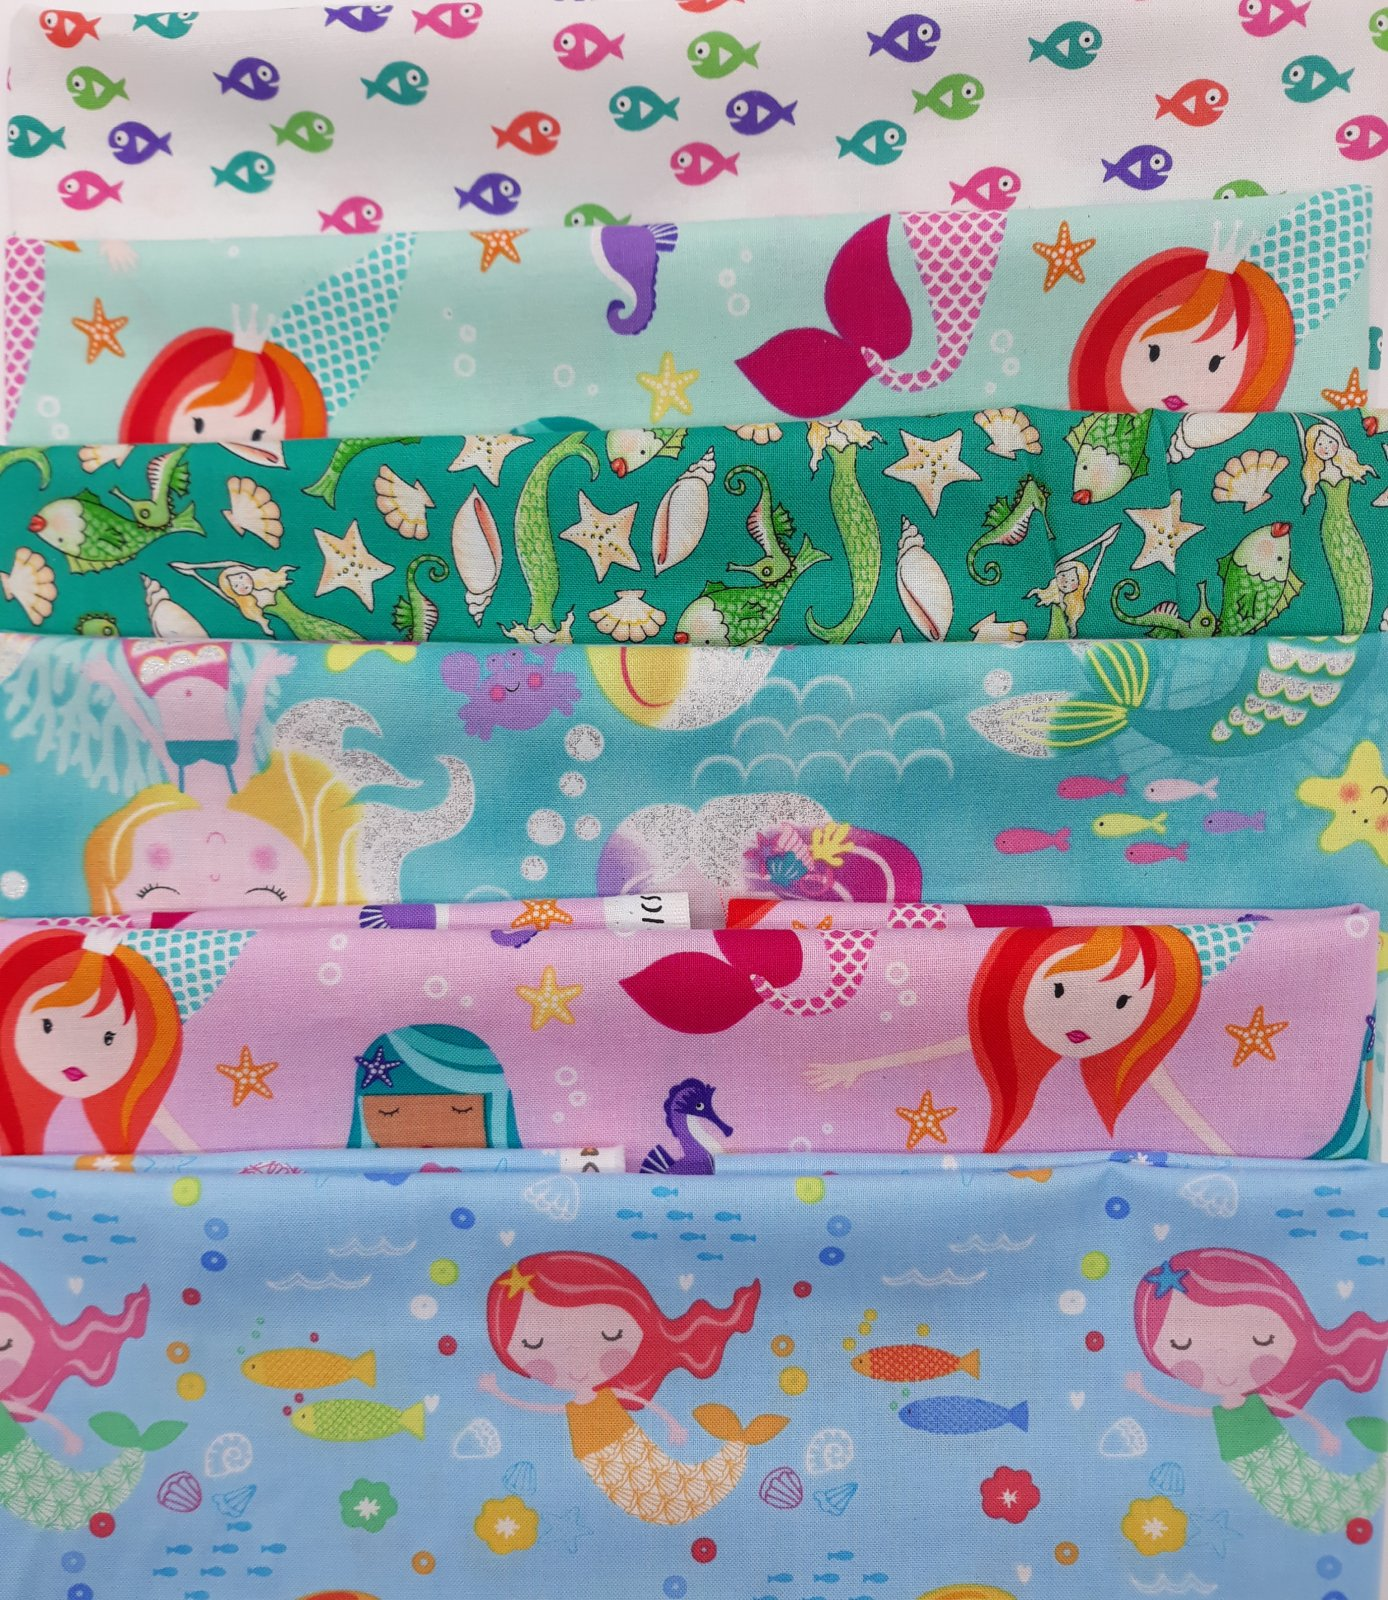 Mermaid Fat Quarter Juvenile